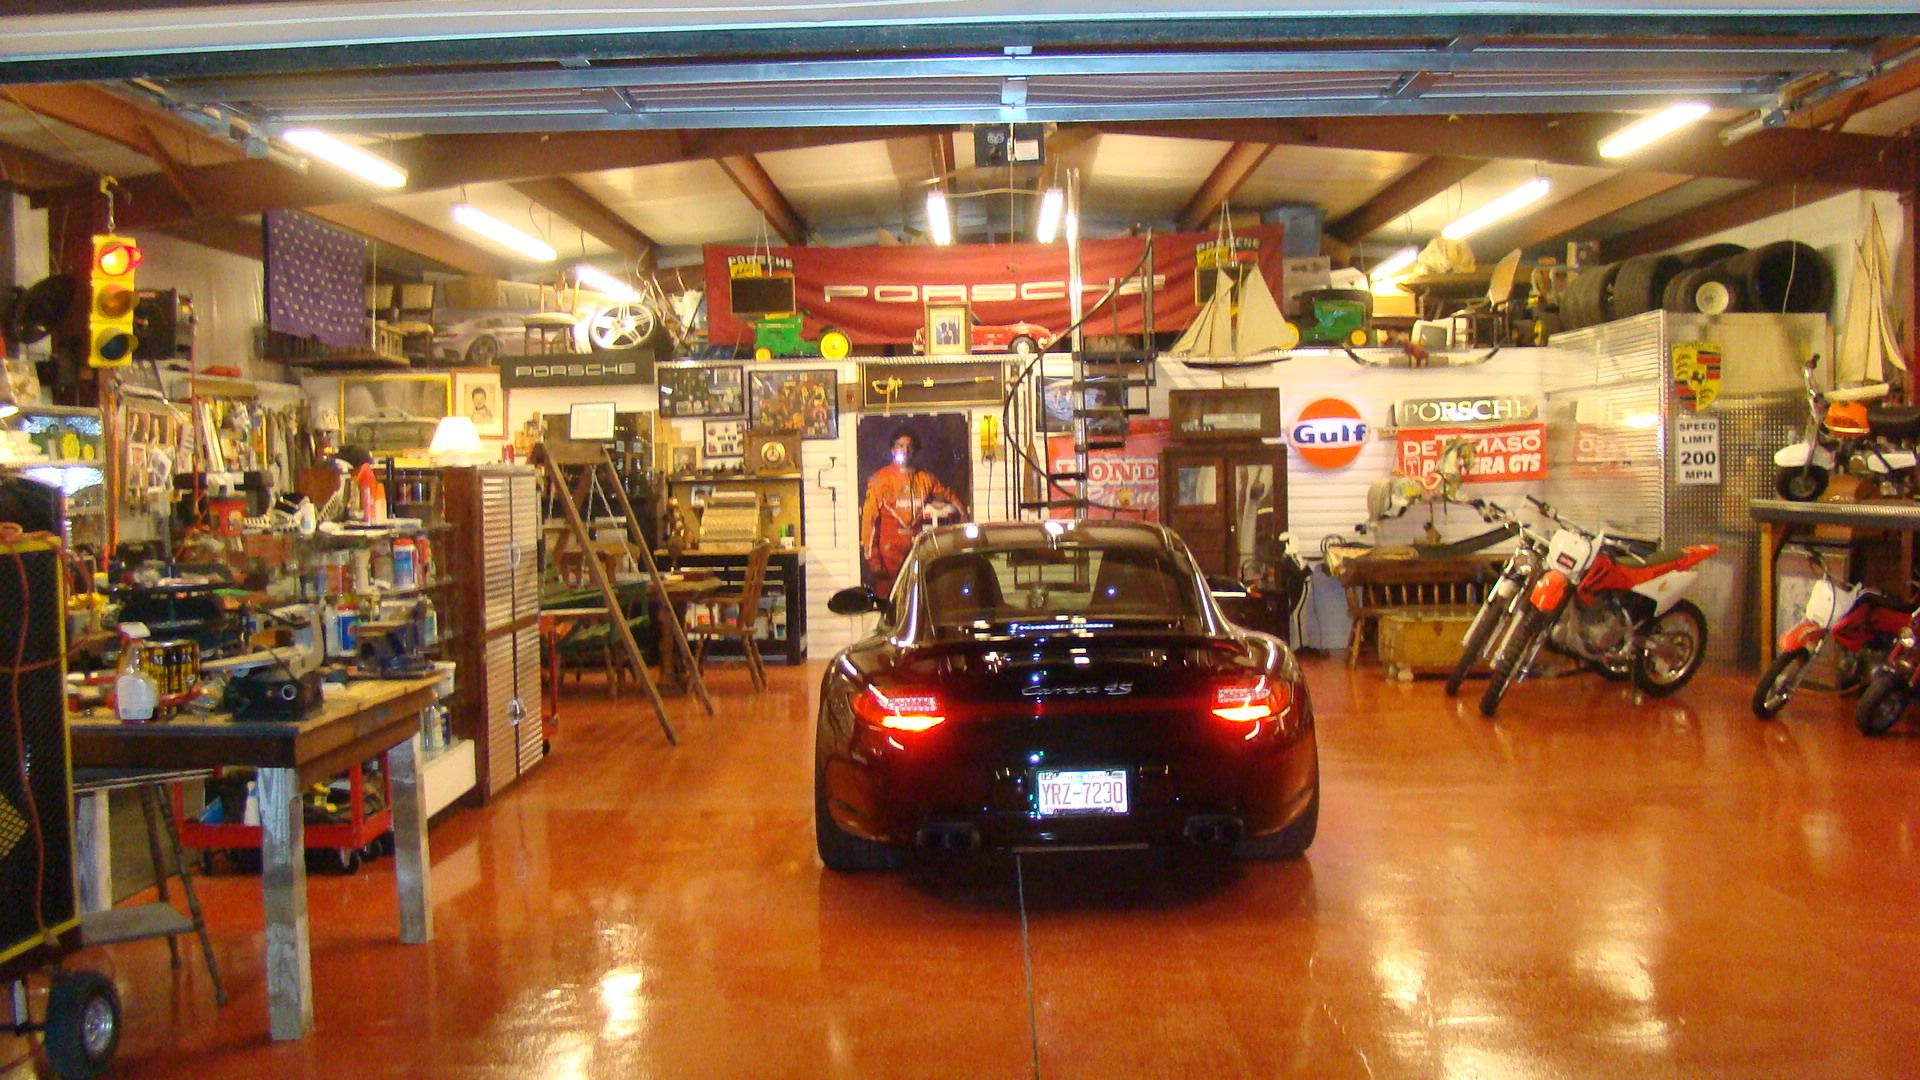 Mechanic Man Cave Ideas : Mancave every man needs his space and a complete with